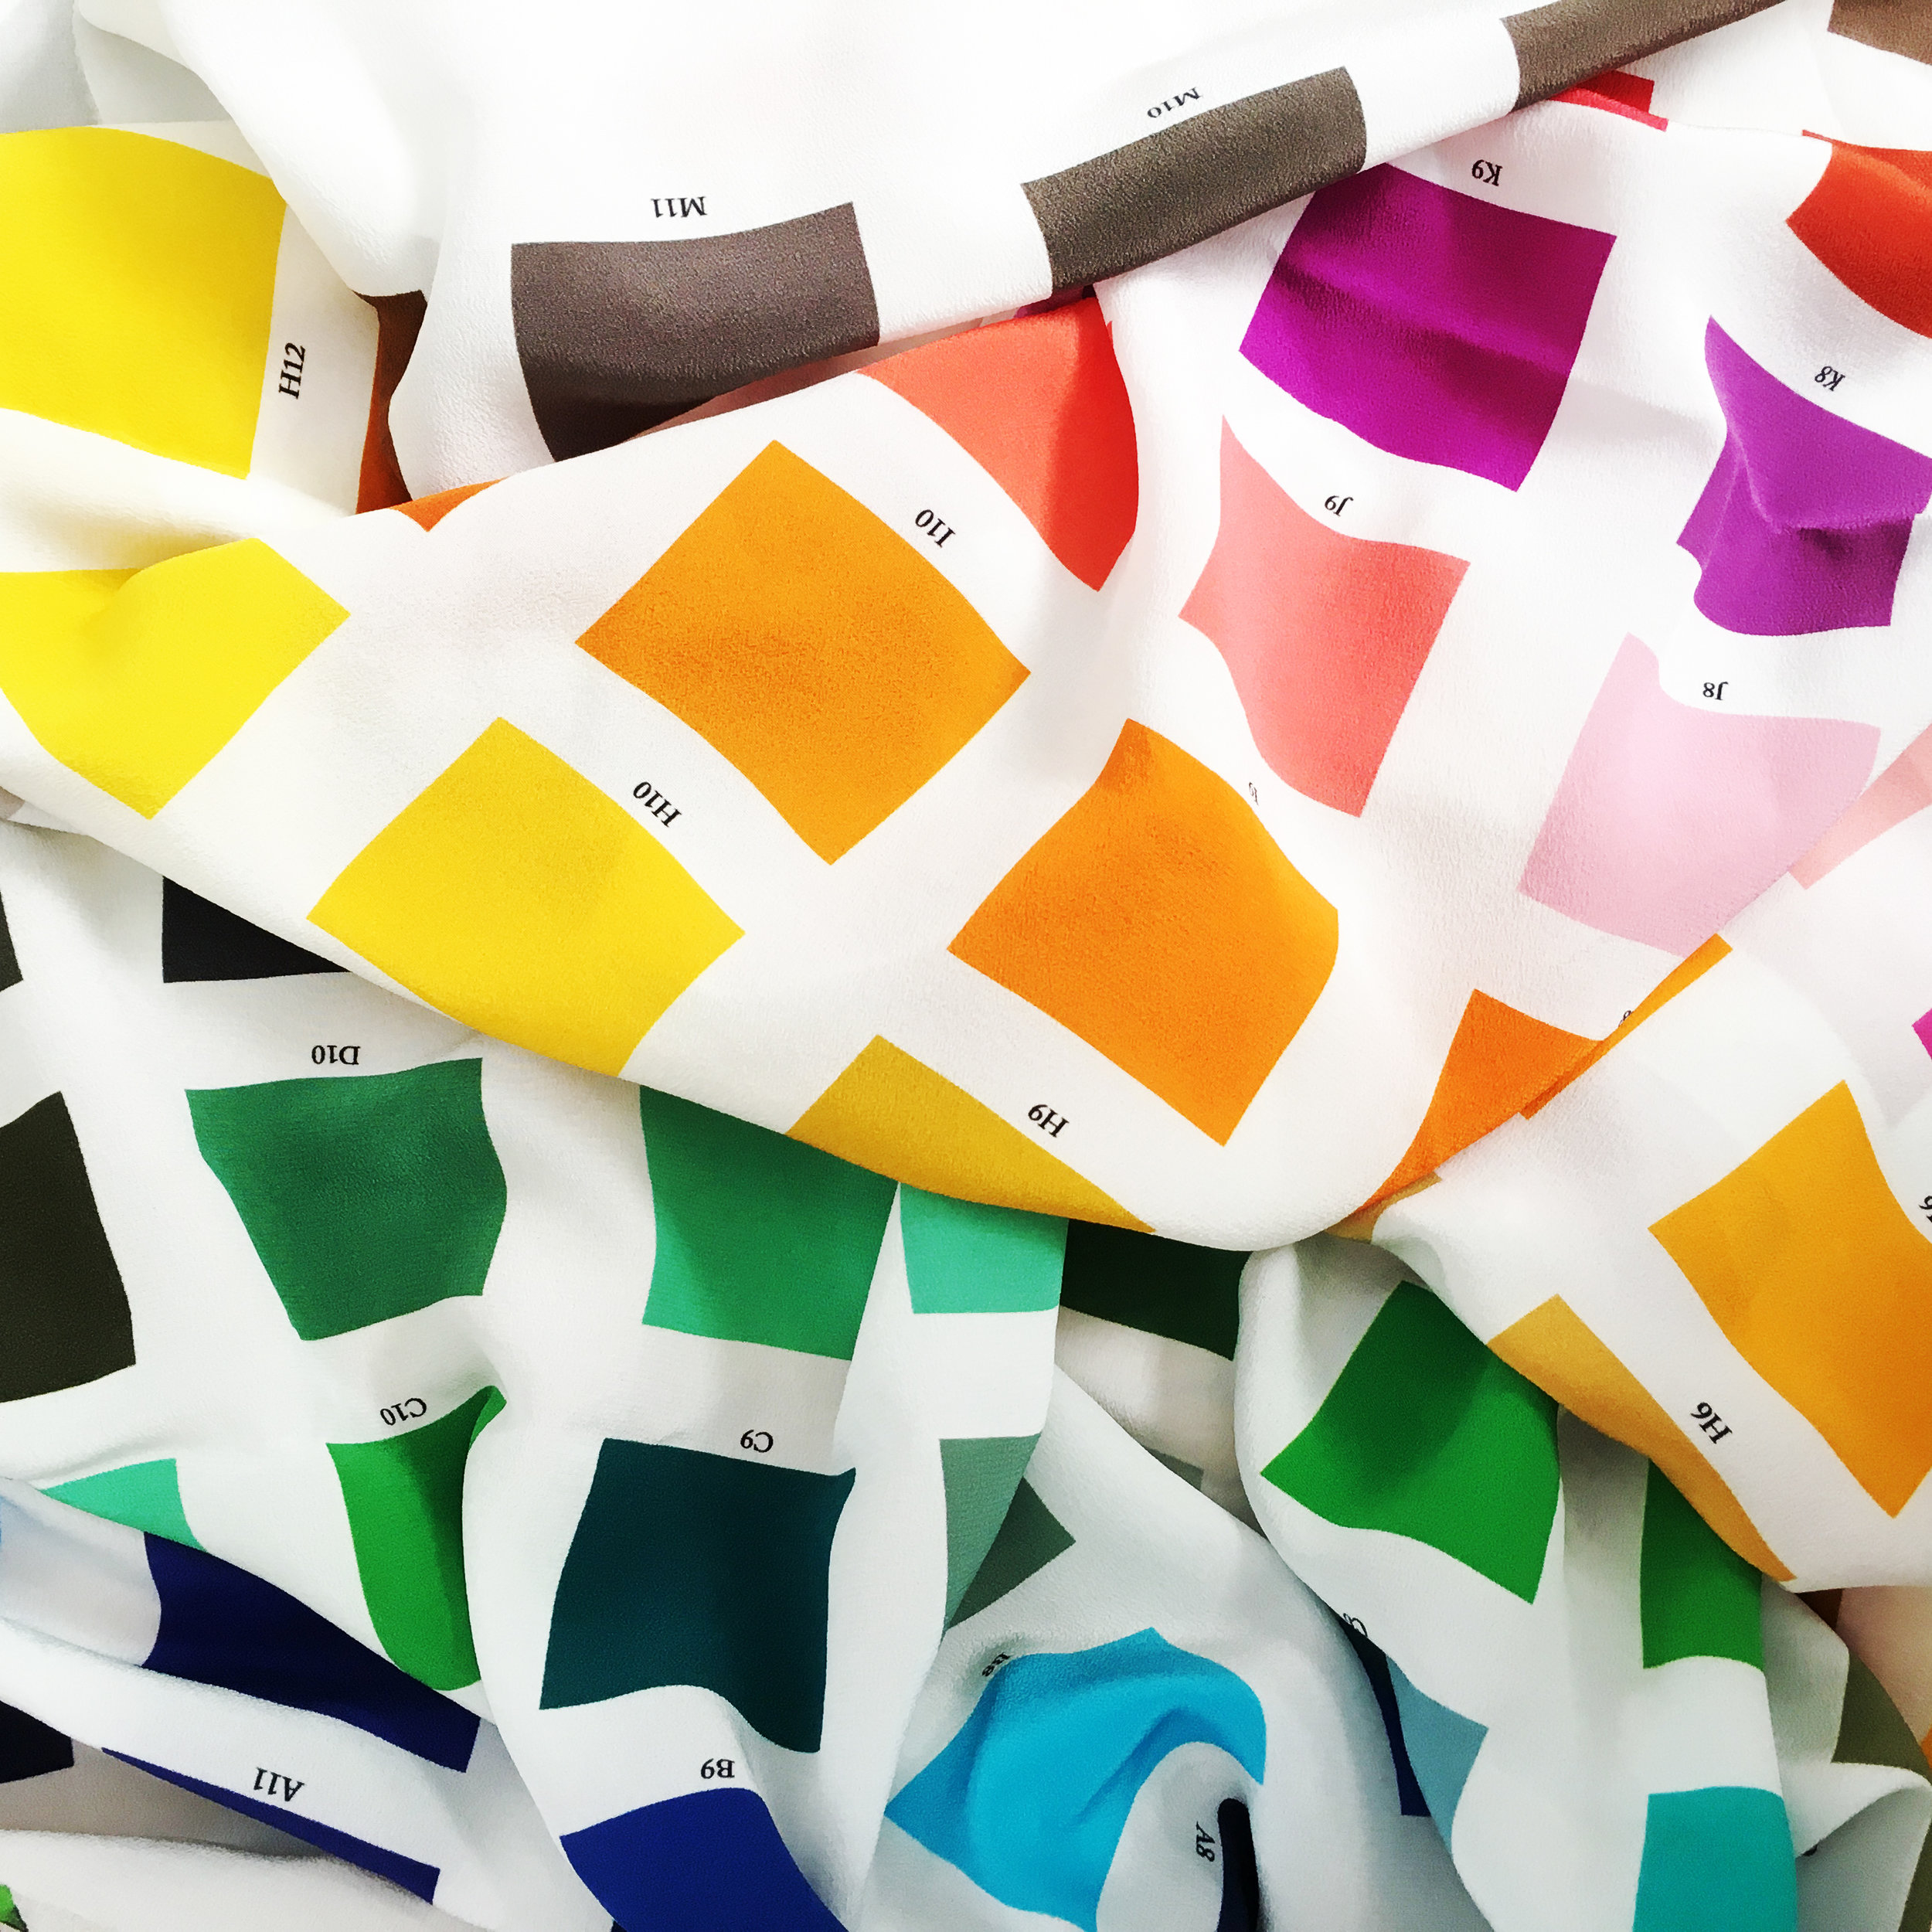 COLOR MATCHING & indexing - We are able to match any specific color/ color profiles.